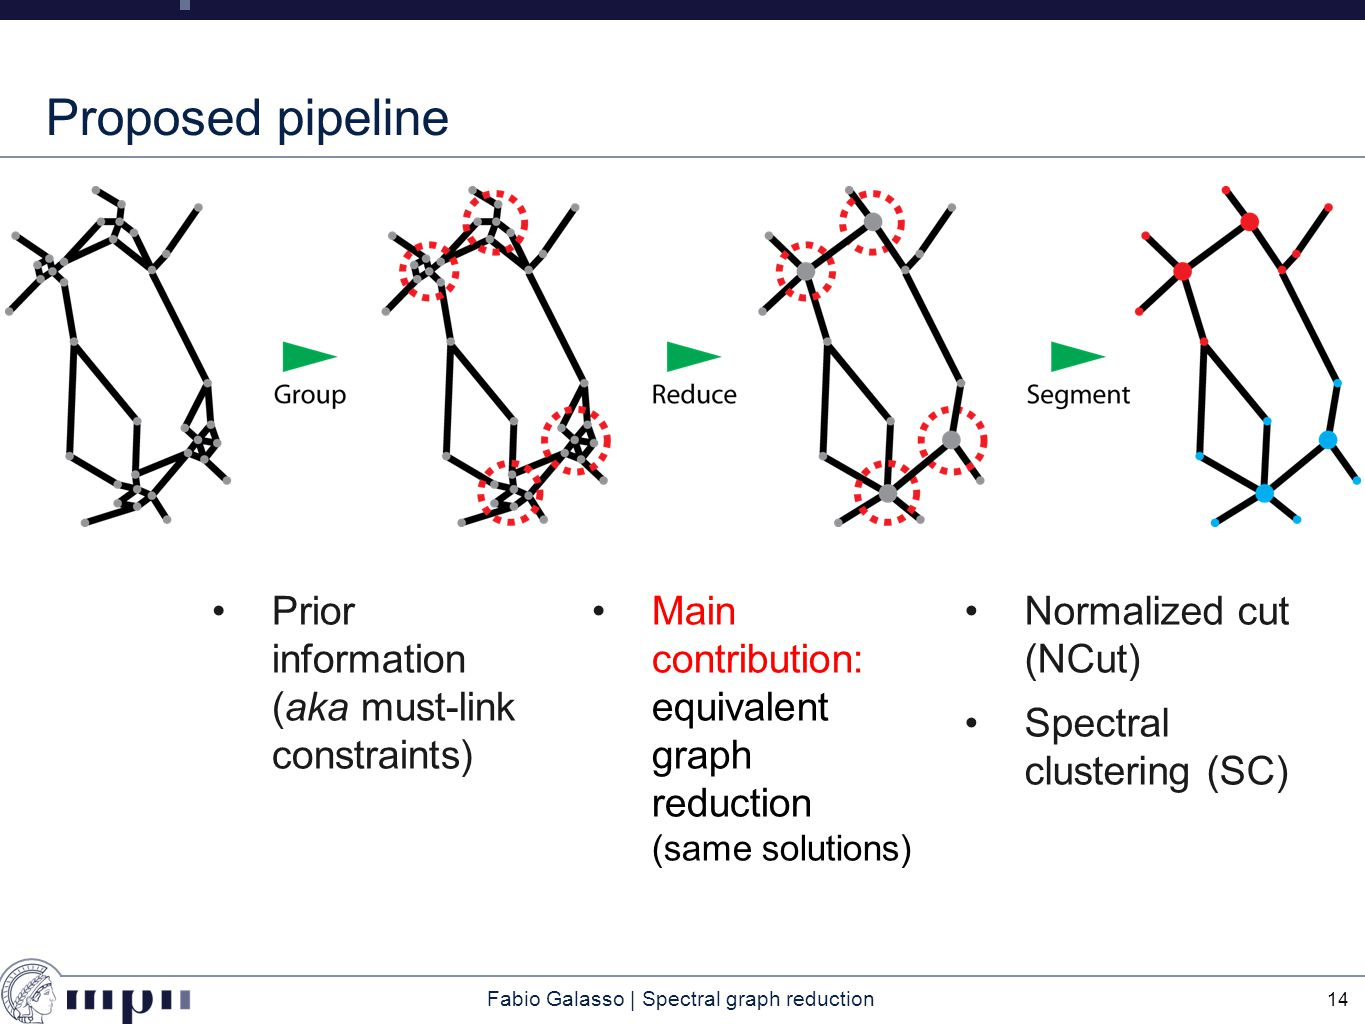 Fabio Galasso | Spectral graph reduction Proposed pipeline Prior information (aka must-link constraints) 14 Main contribution: equivalent graph reduction (same solutions) Normalized cut (NCut) Spectral clustering (SC)